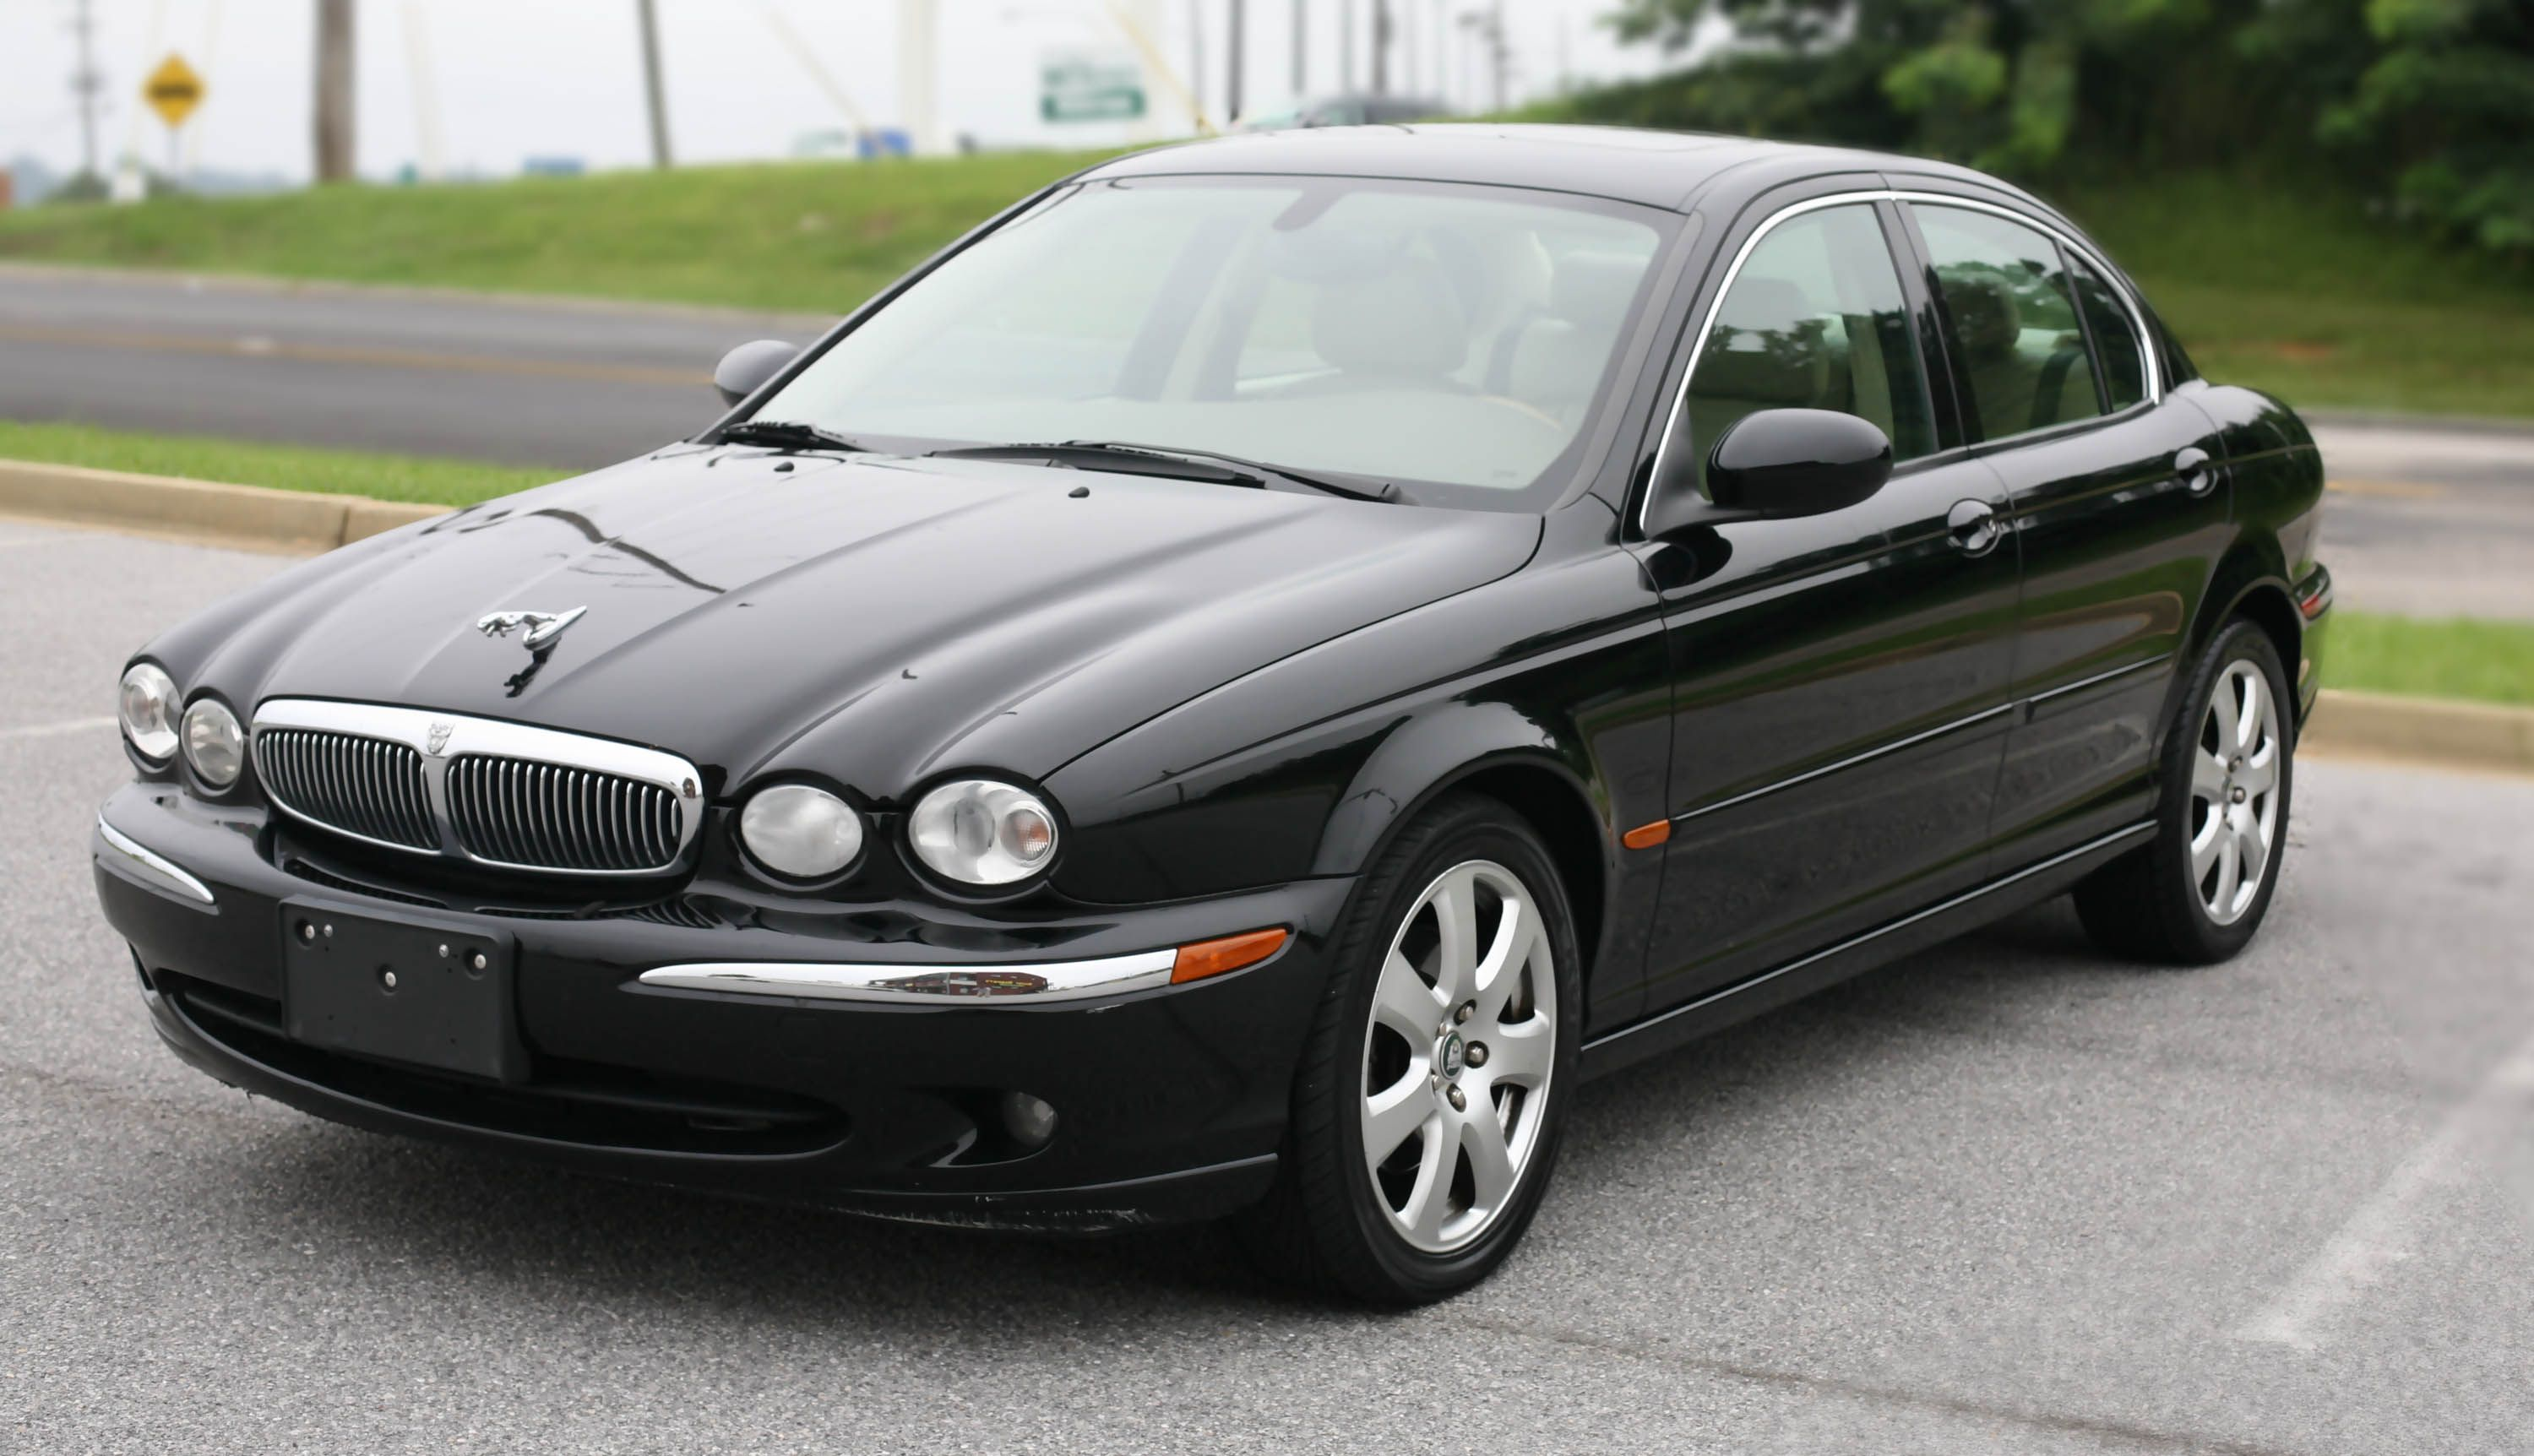 The jaguar x type is a compact executive car that was manufactured and marketed by jaguar cars from 2001 to 2009 in a single generat